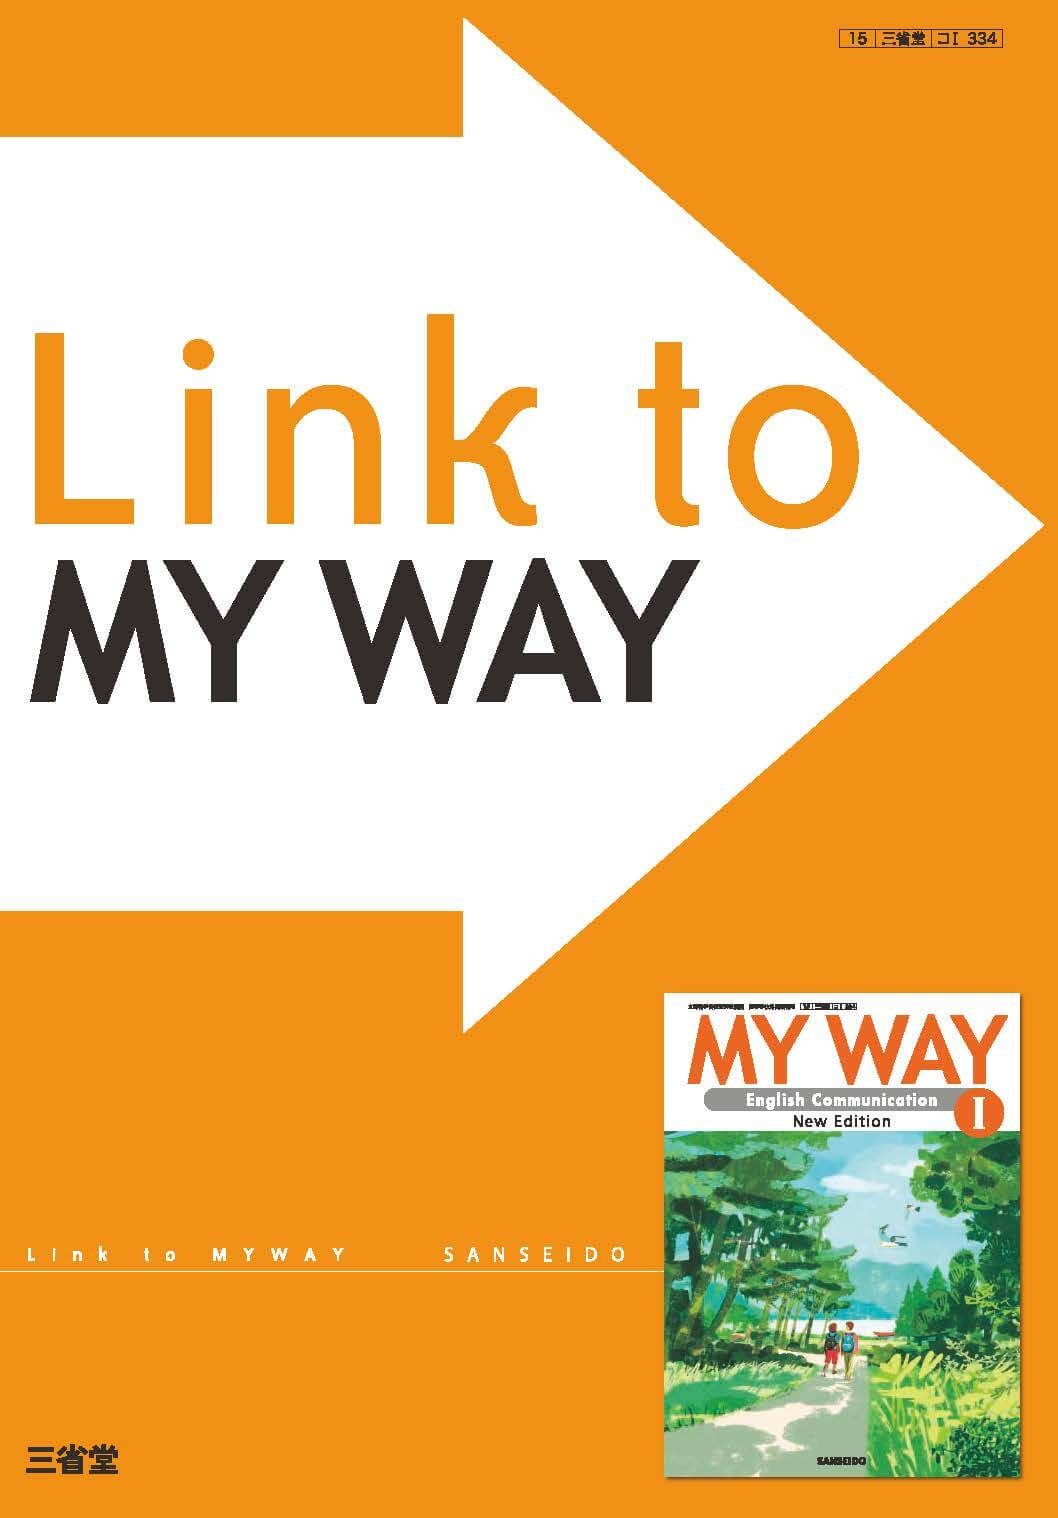 Link to MY WAY(B5判 40ページ)